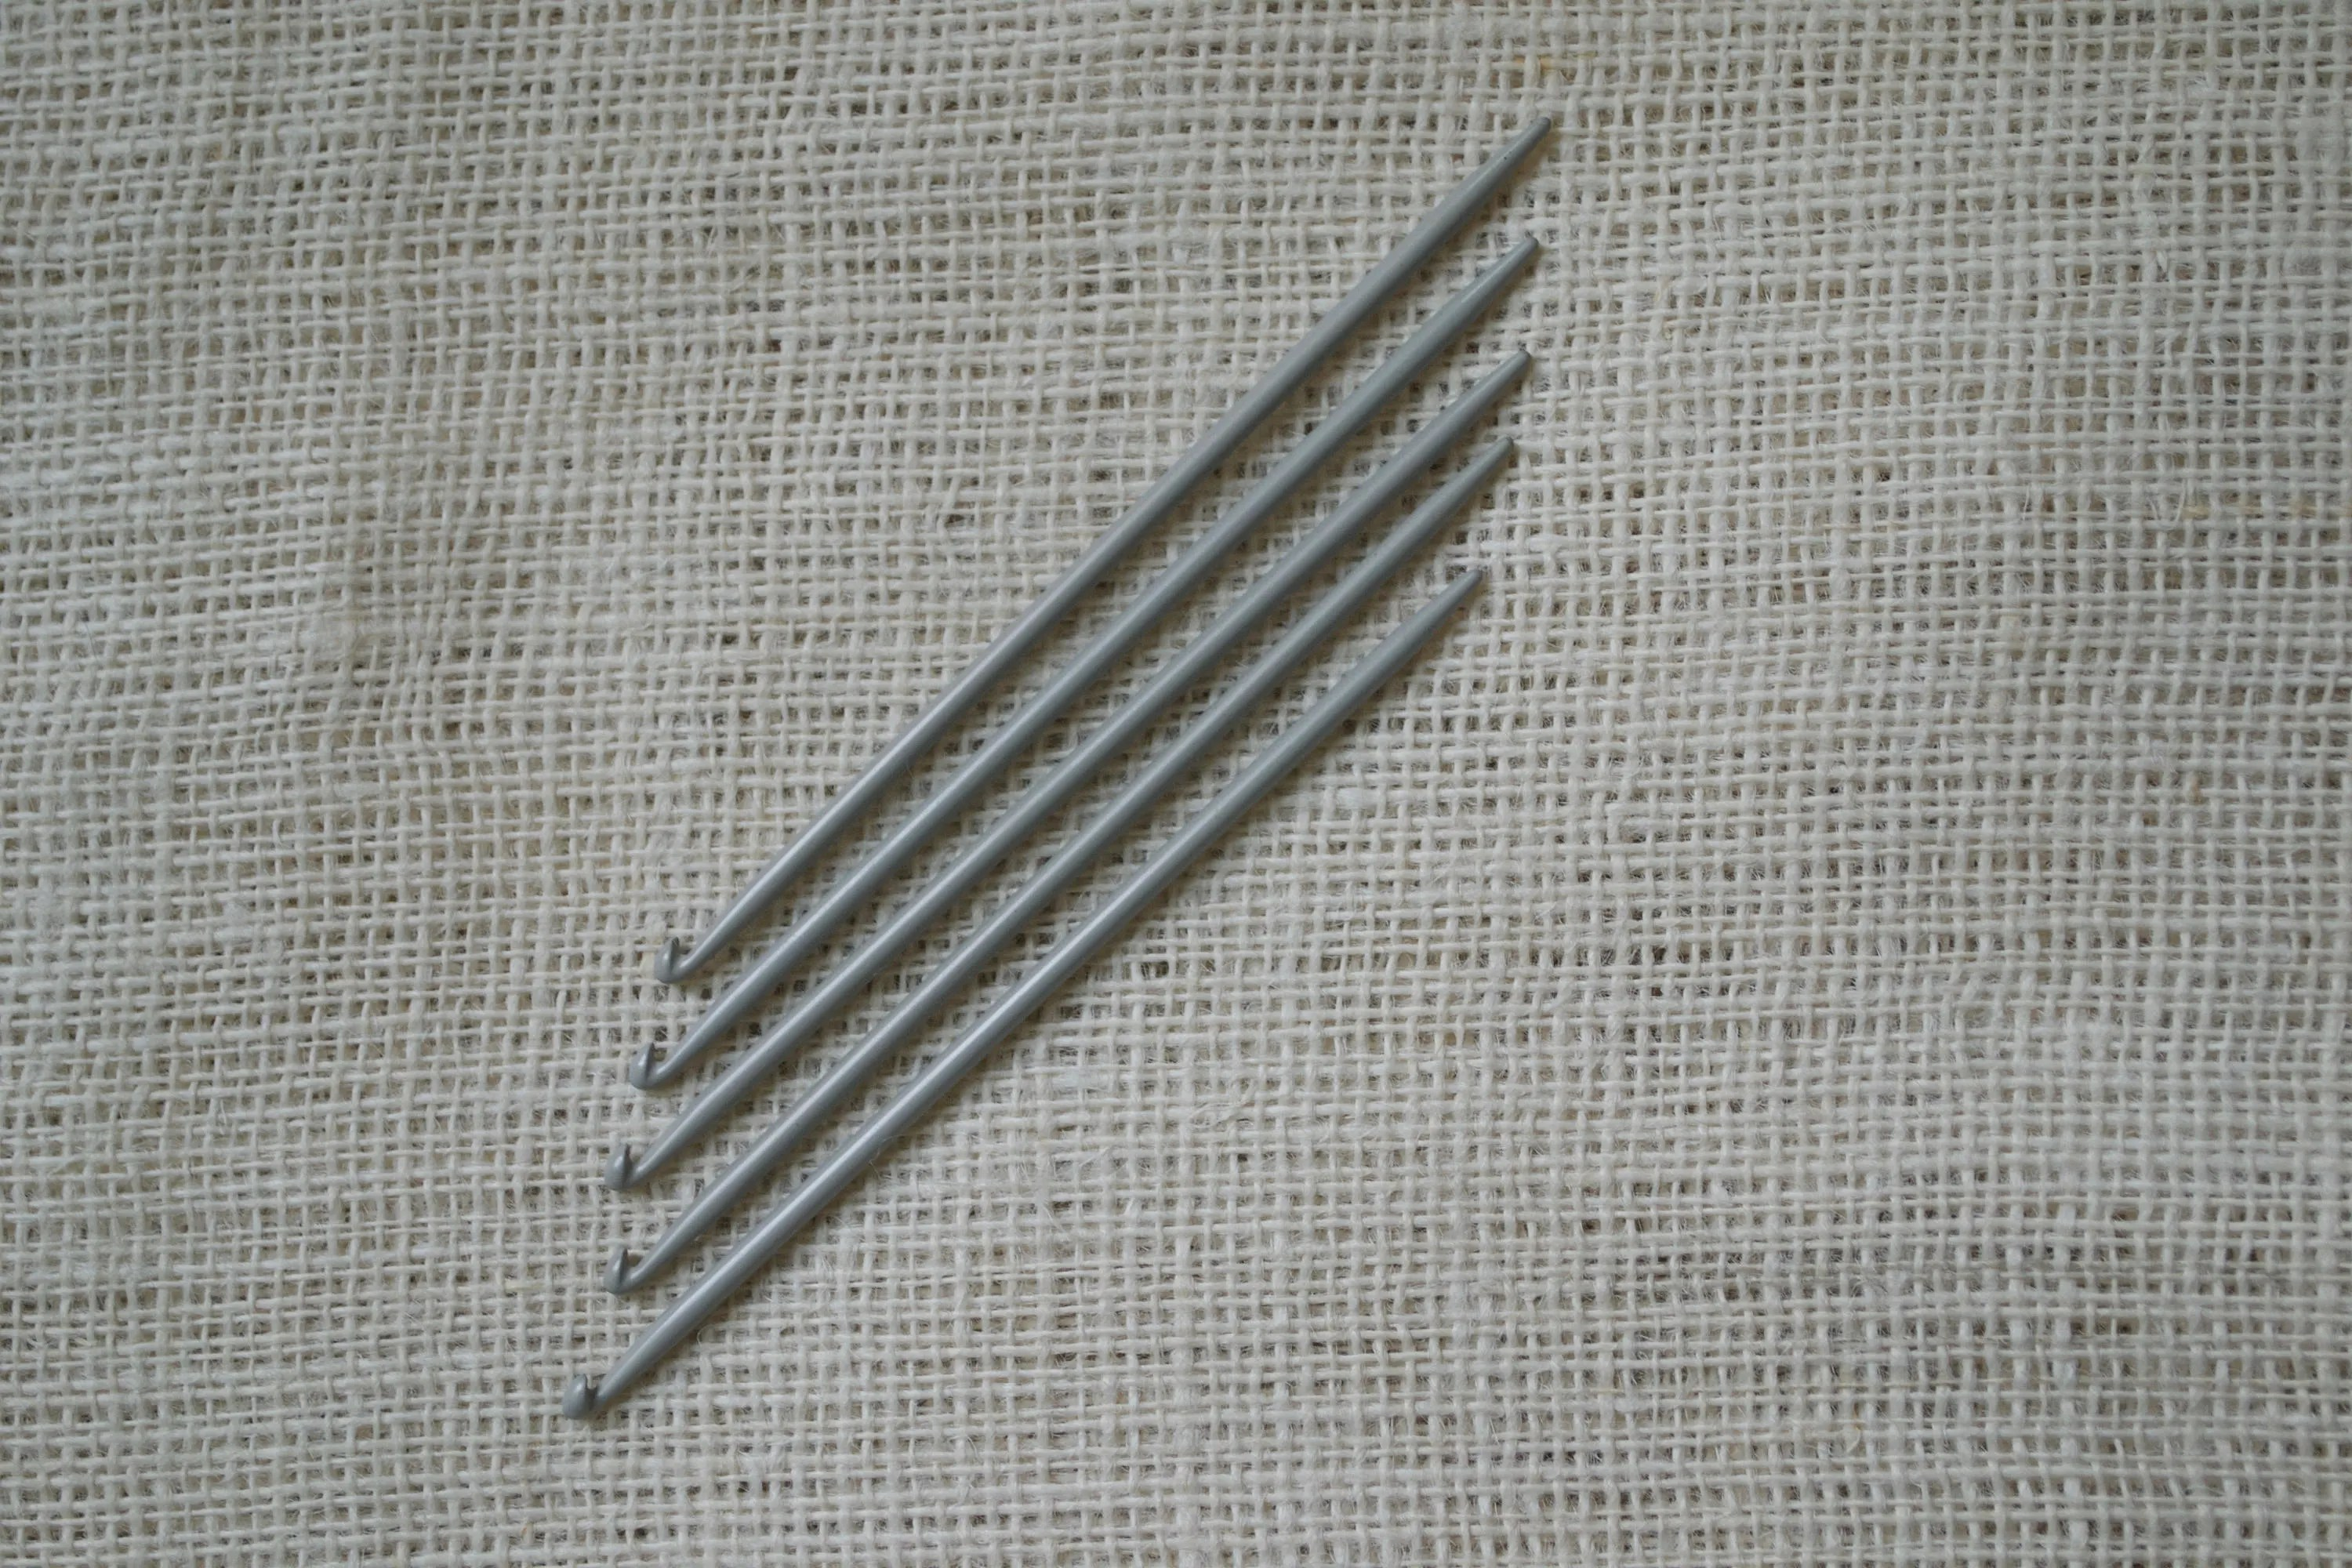 Knitting Needles with Hooks at the End Traditional